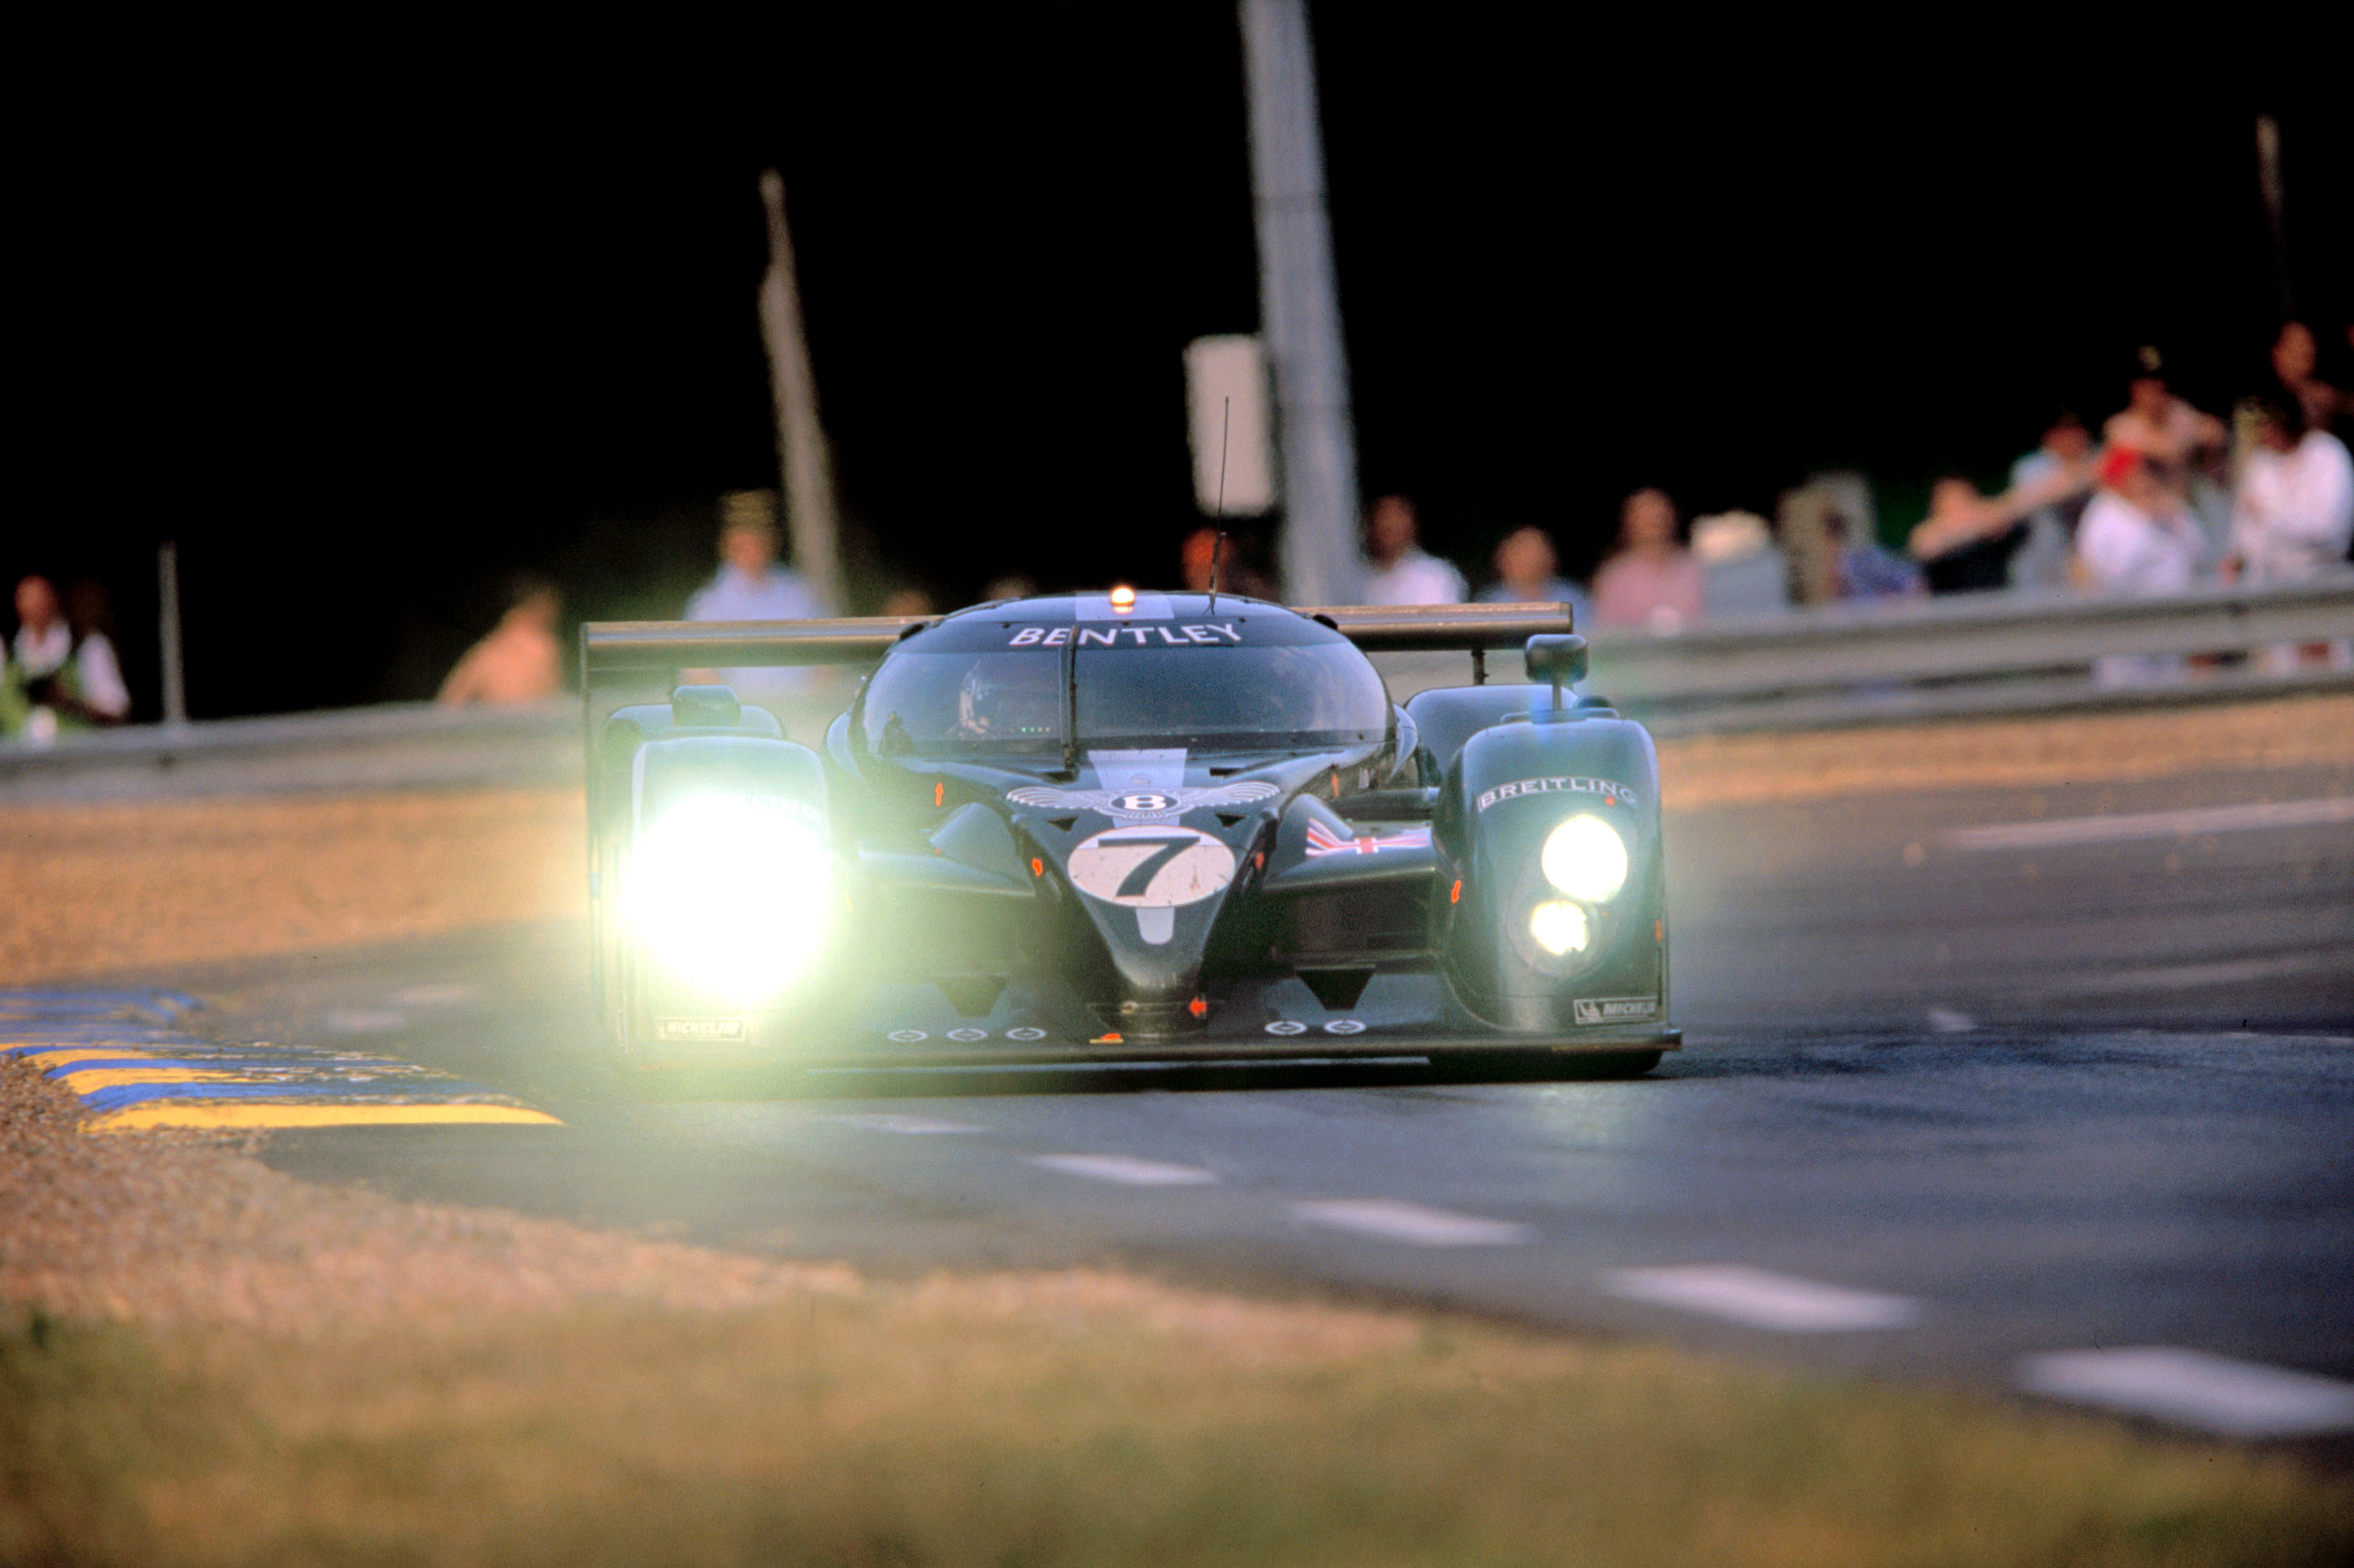 Bentley's Speed Eight was the only car to beat the Audi R8 at Le Mans, prevailing in 2003 with Kristensen, Capello and Smith